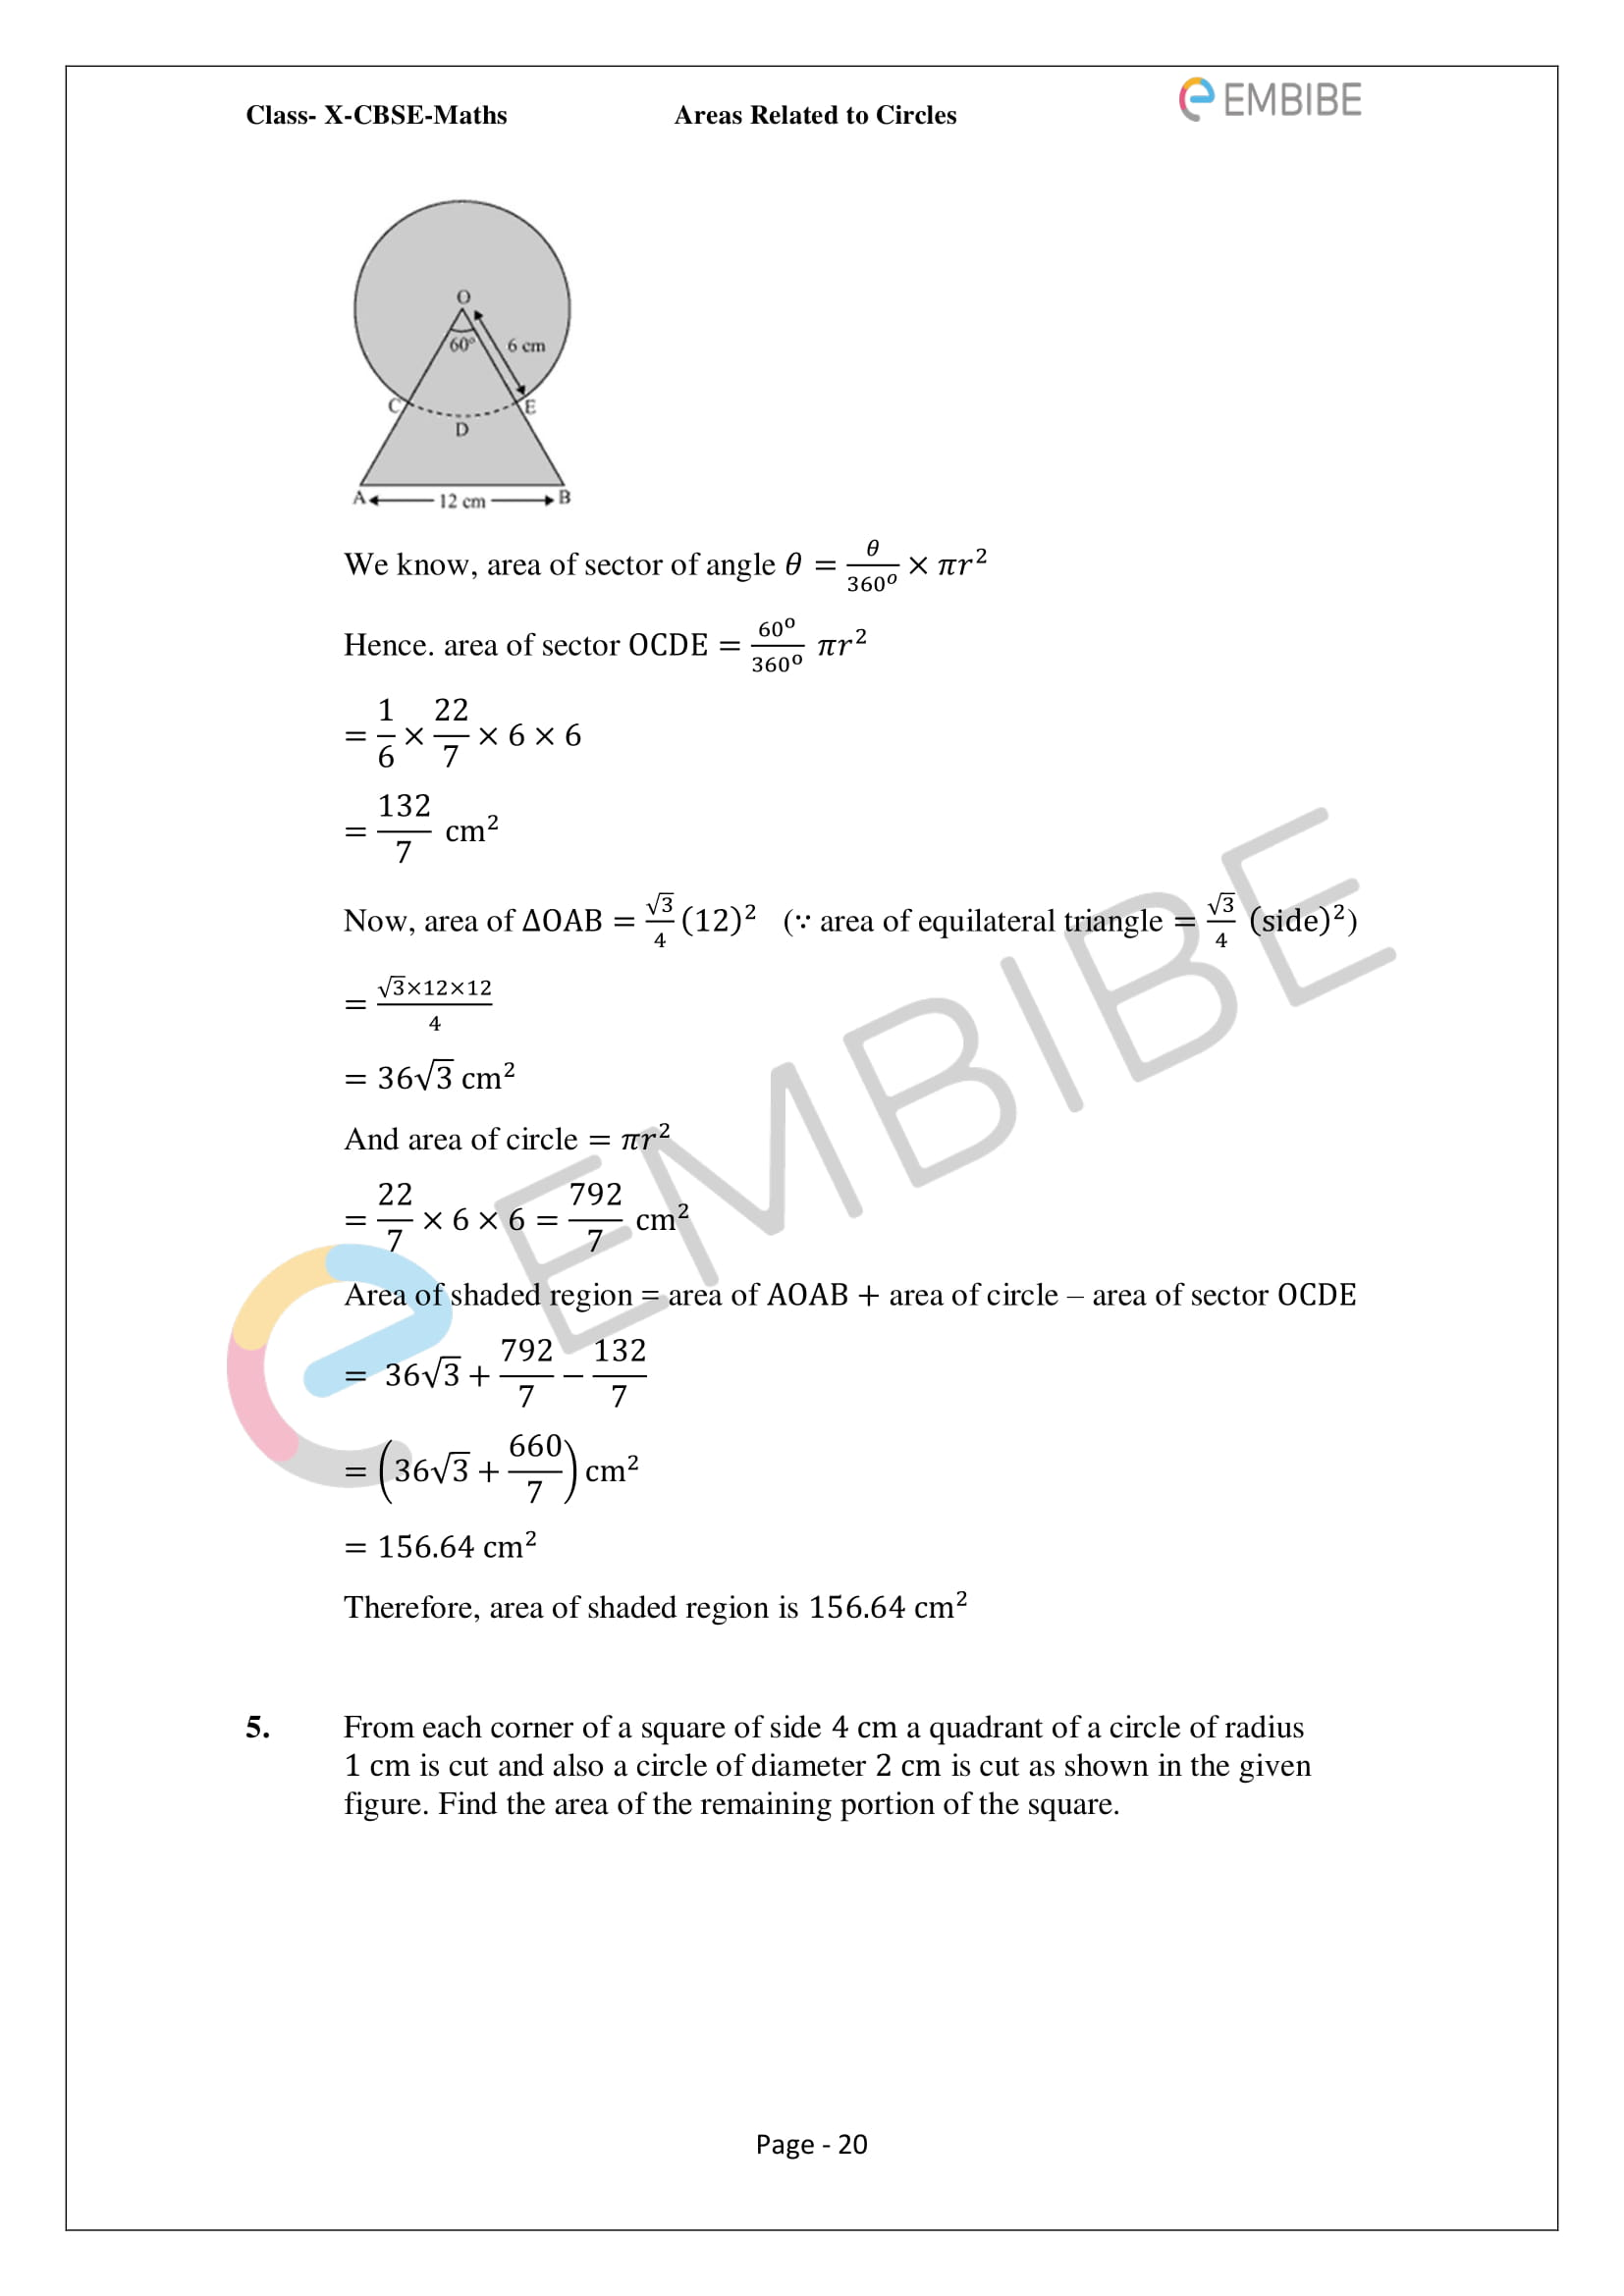 CBSE NCERT Solutions For Class 10 Maths Chapter 12 - Areas Related To Circle - 20